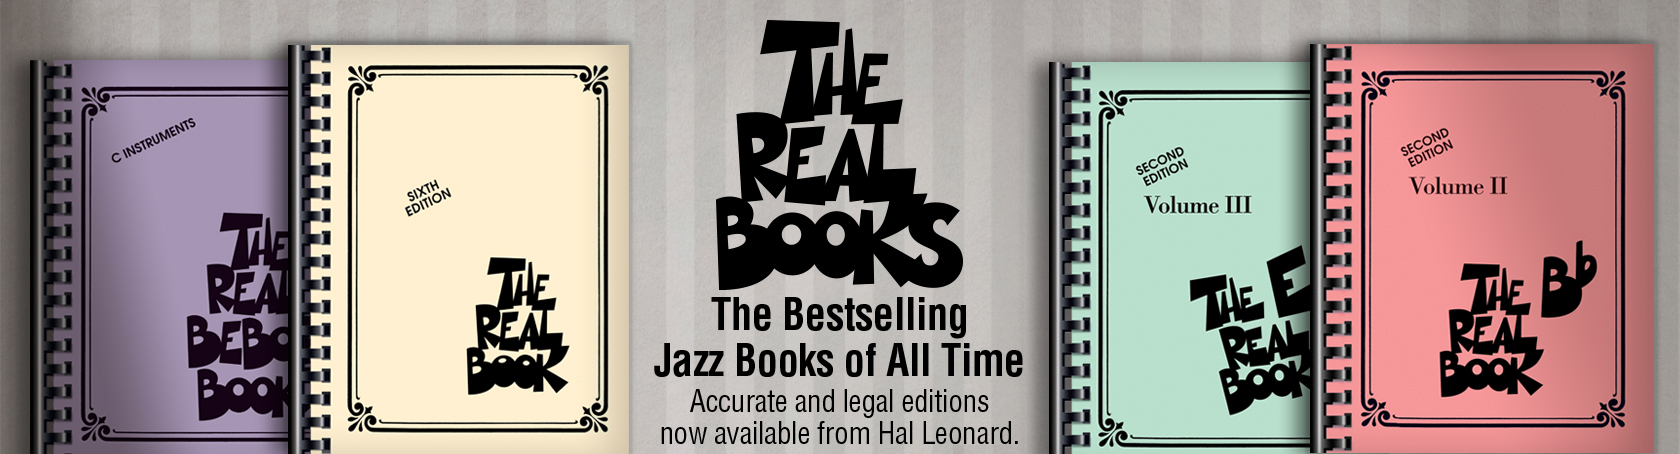 Real Books - The Bestselling Jazz Books of All Time